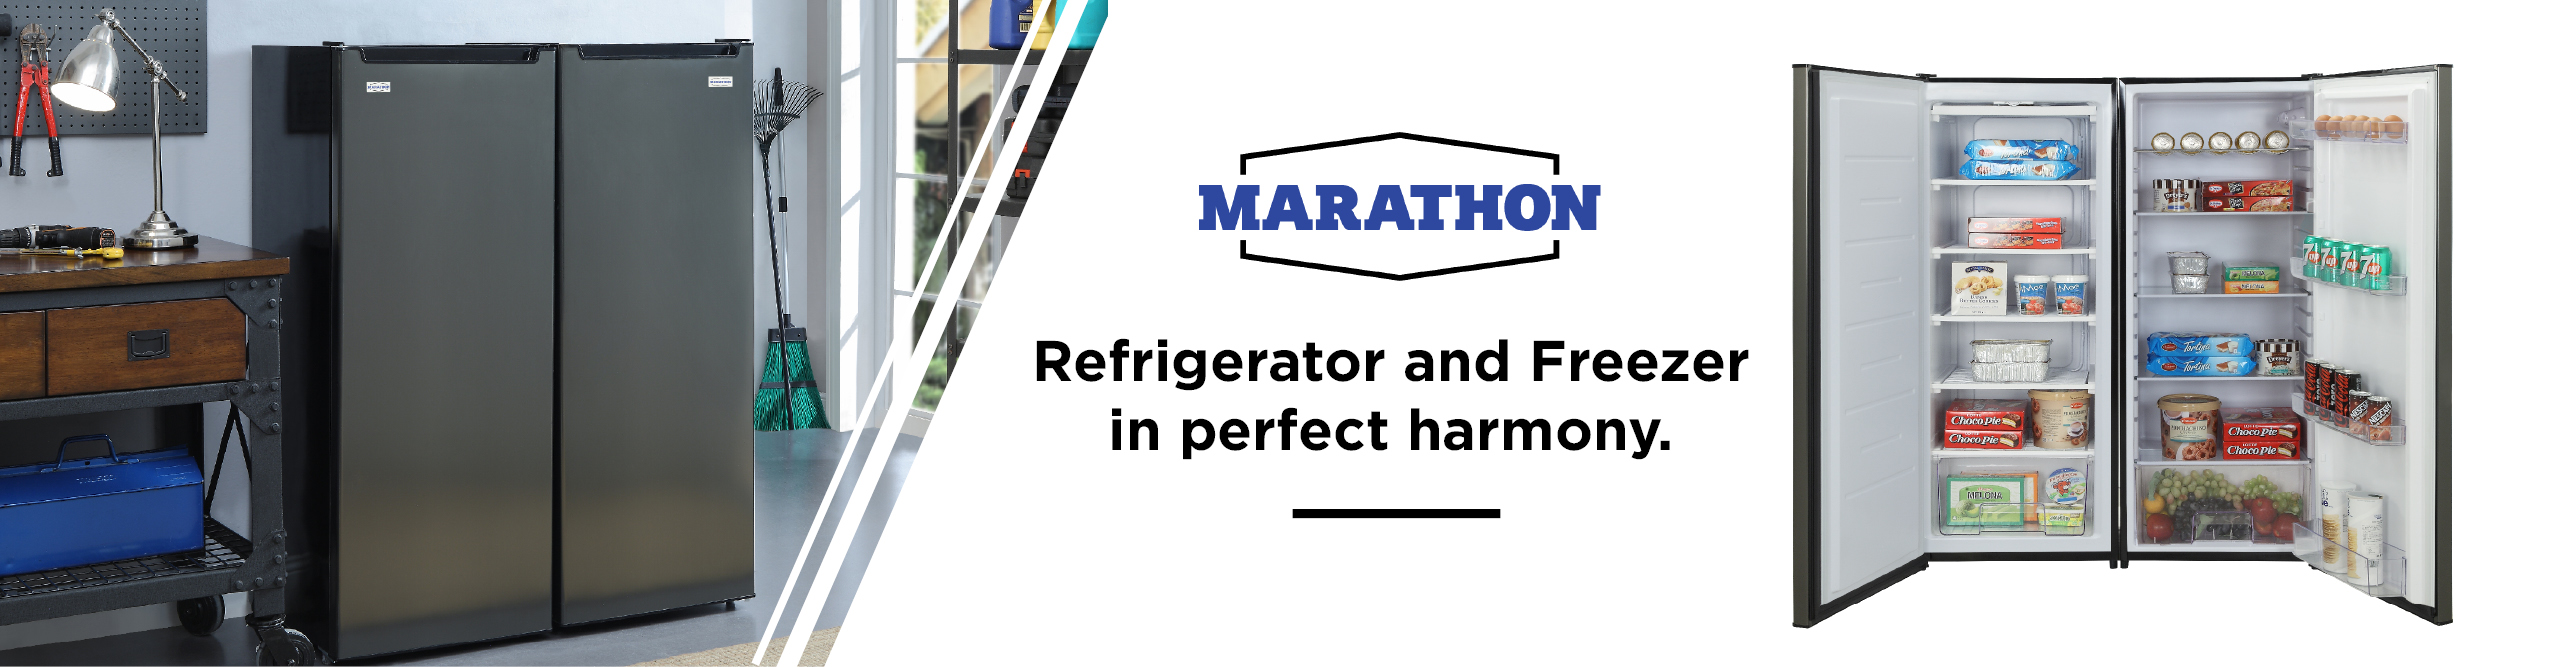 Refrigerator and Freezer in perfect harmony